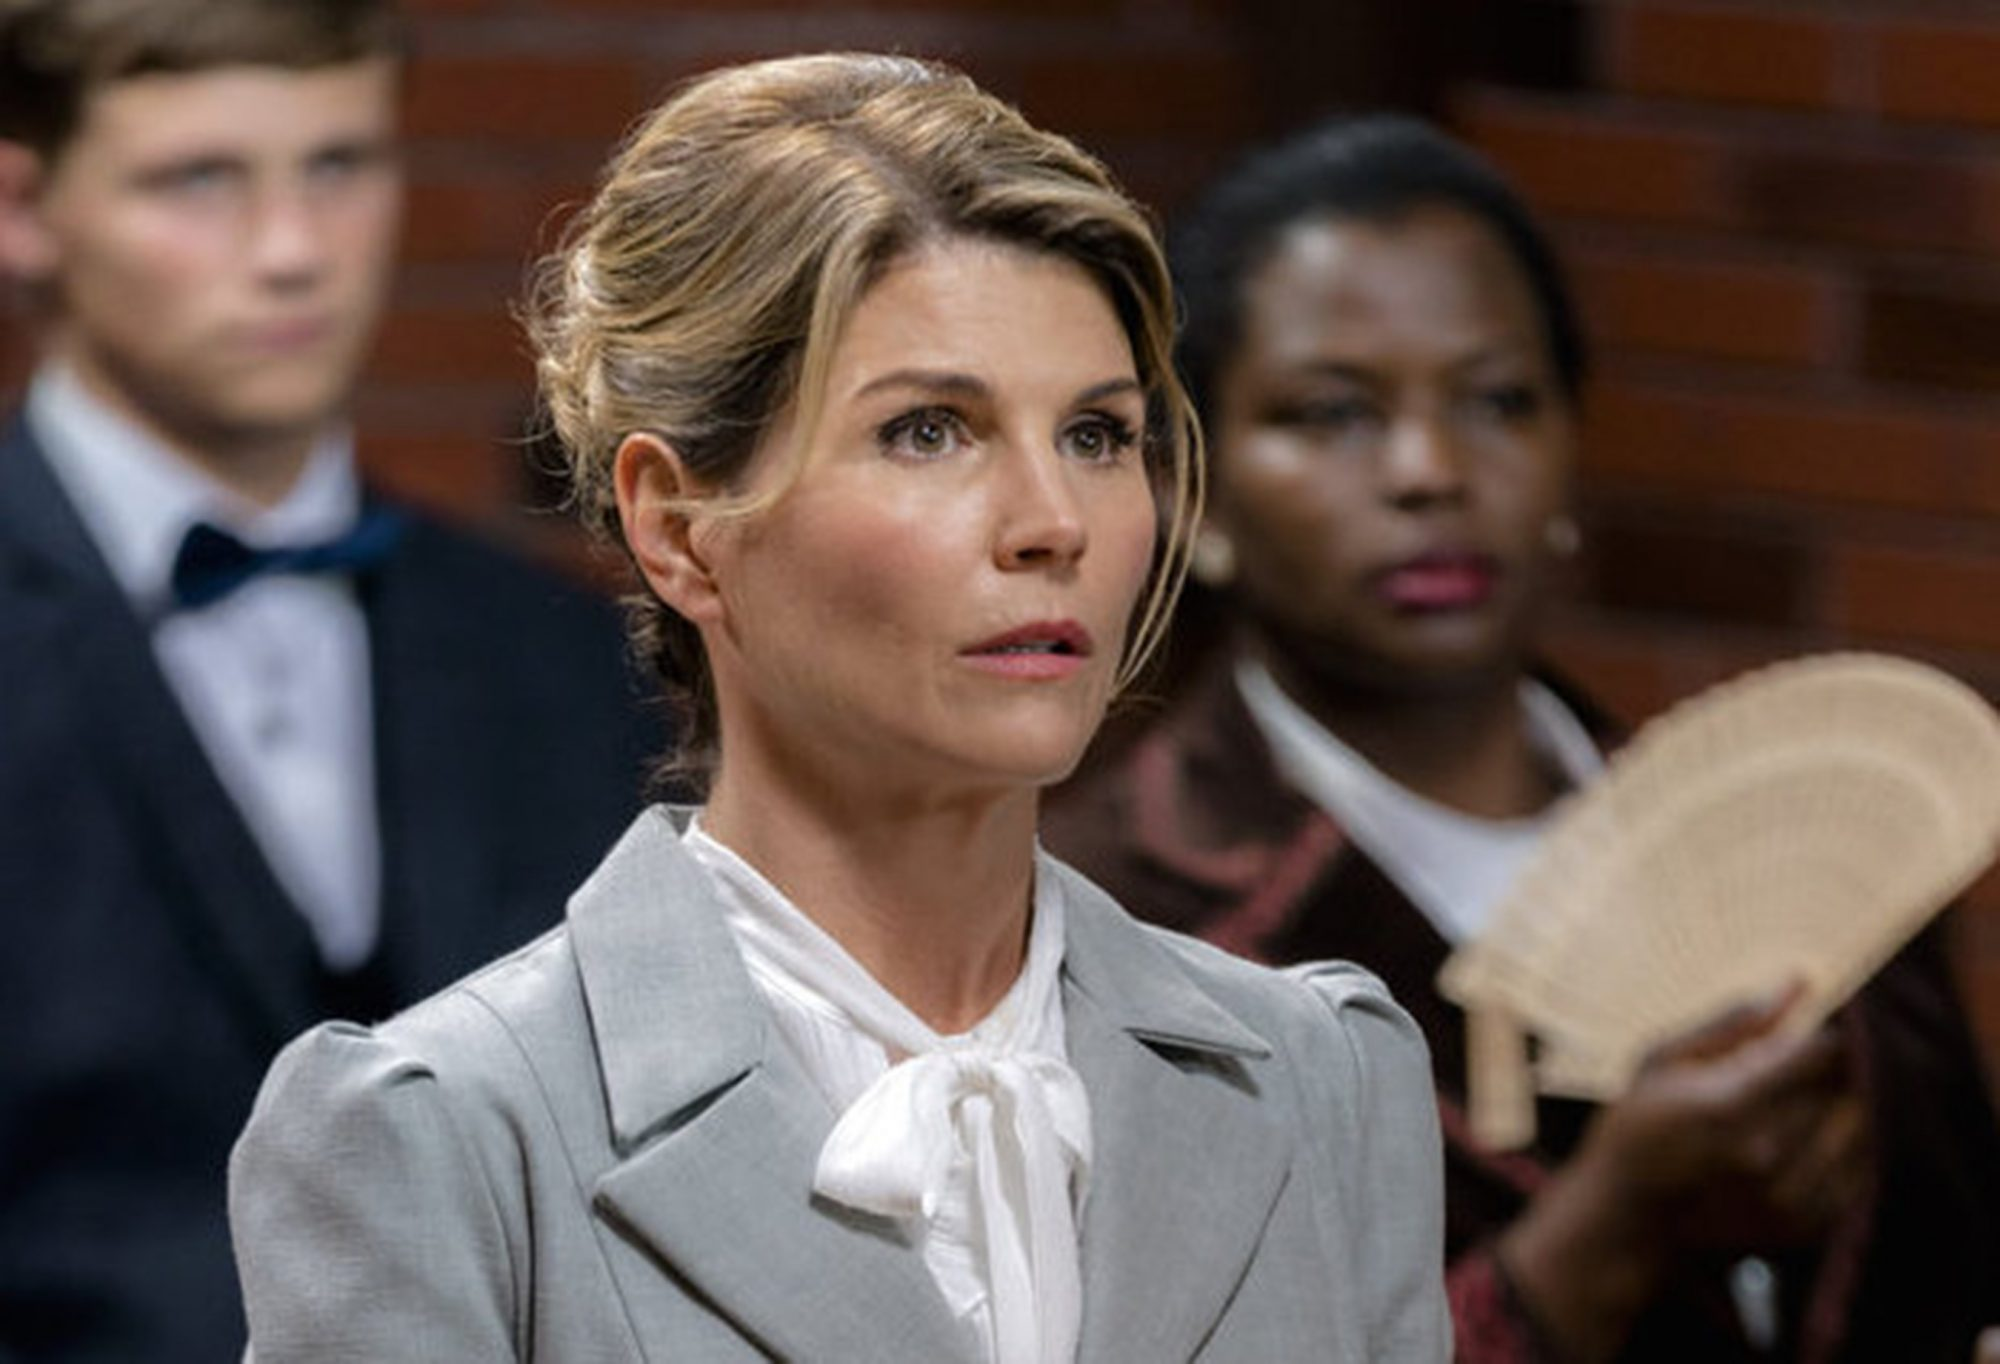 When Calls the Heart Lori LoughlinCredit: Crown Media